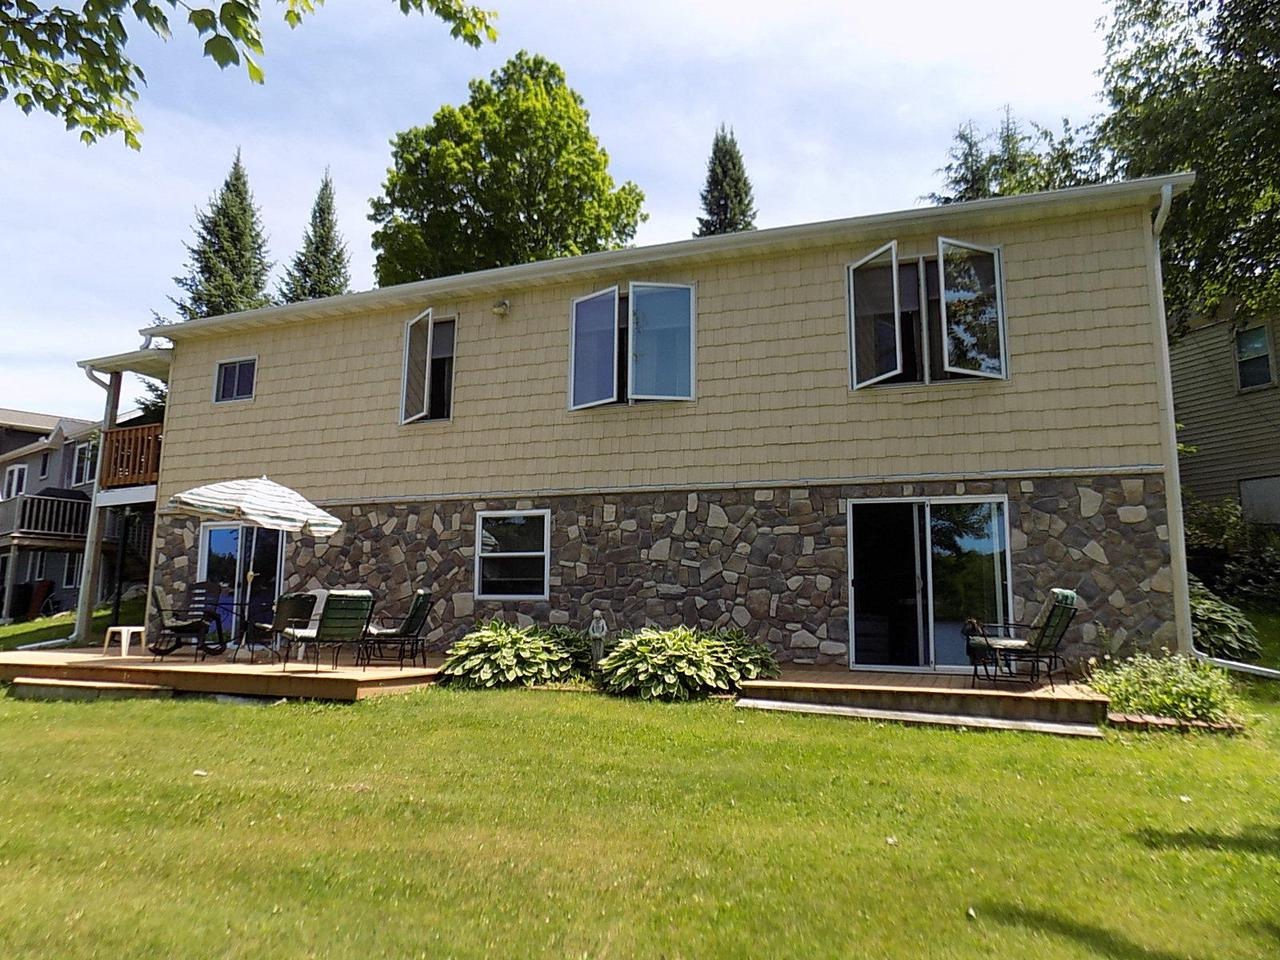 Enjoy this 4 bed 1 bath home on full rec Trump Lake with Beautiful 98 ft. of sand frontage. Home has free standing stove, kitchen pantry, plenty of room and closet space. 24x24 detached garage,8x20 deck and 12x50 Lower deck to watch the sunsets, with Seating area by the Lake. This is a Beautiful Home with Beautiful Frontage, so Call Today for Your Private Showing!